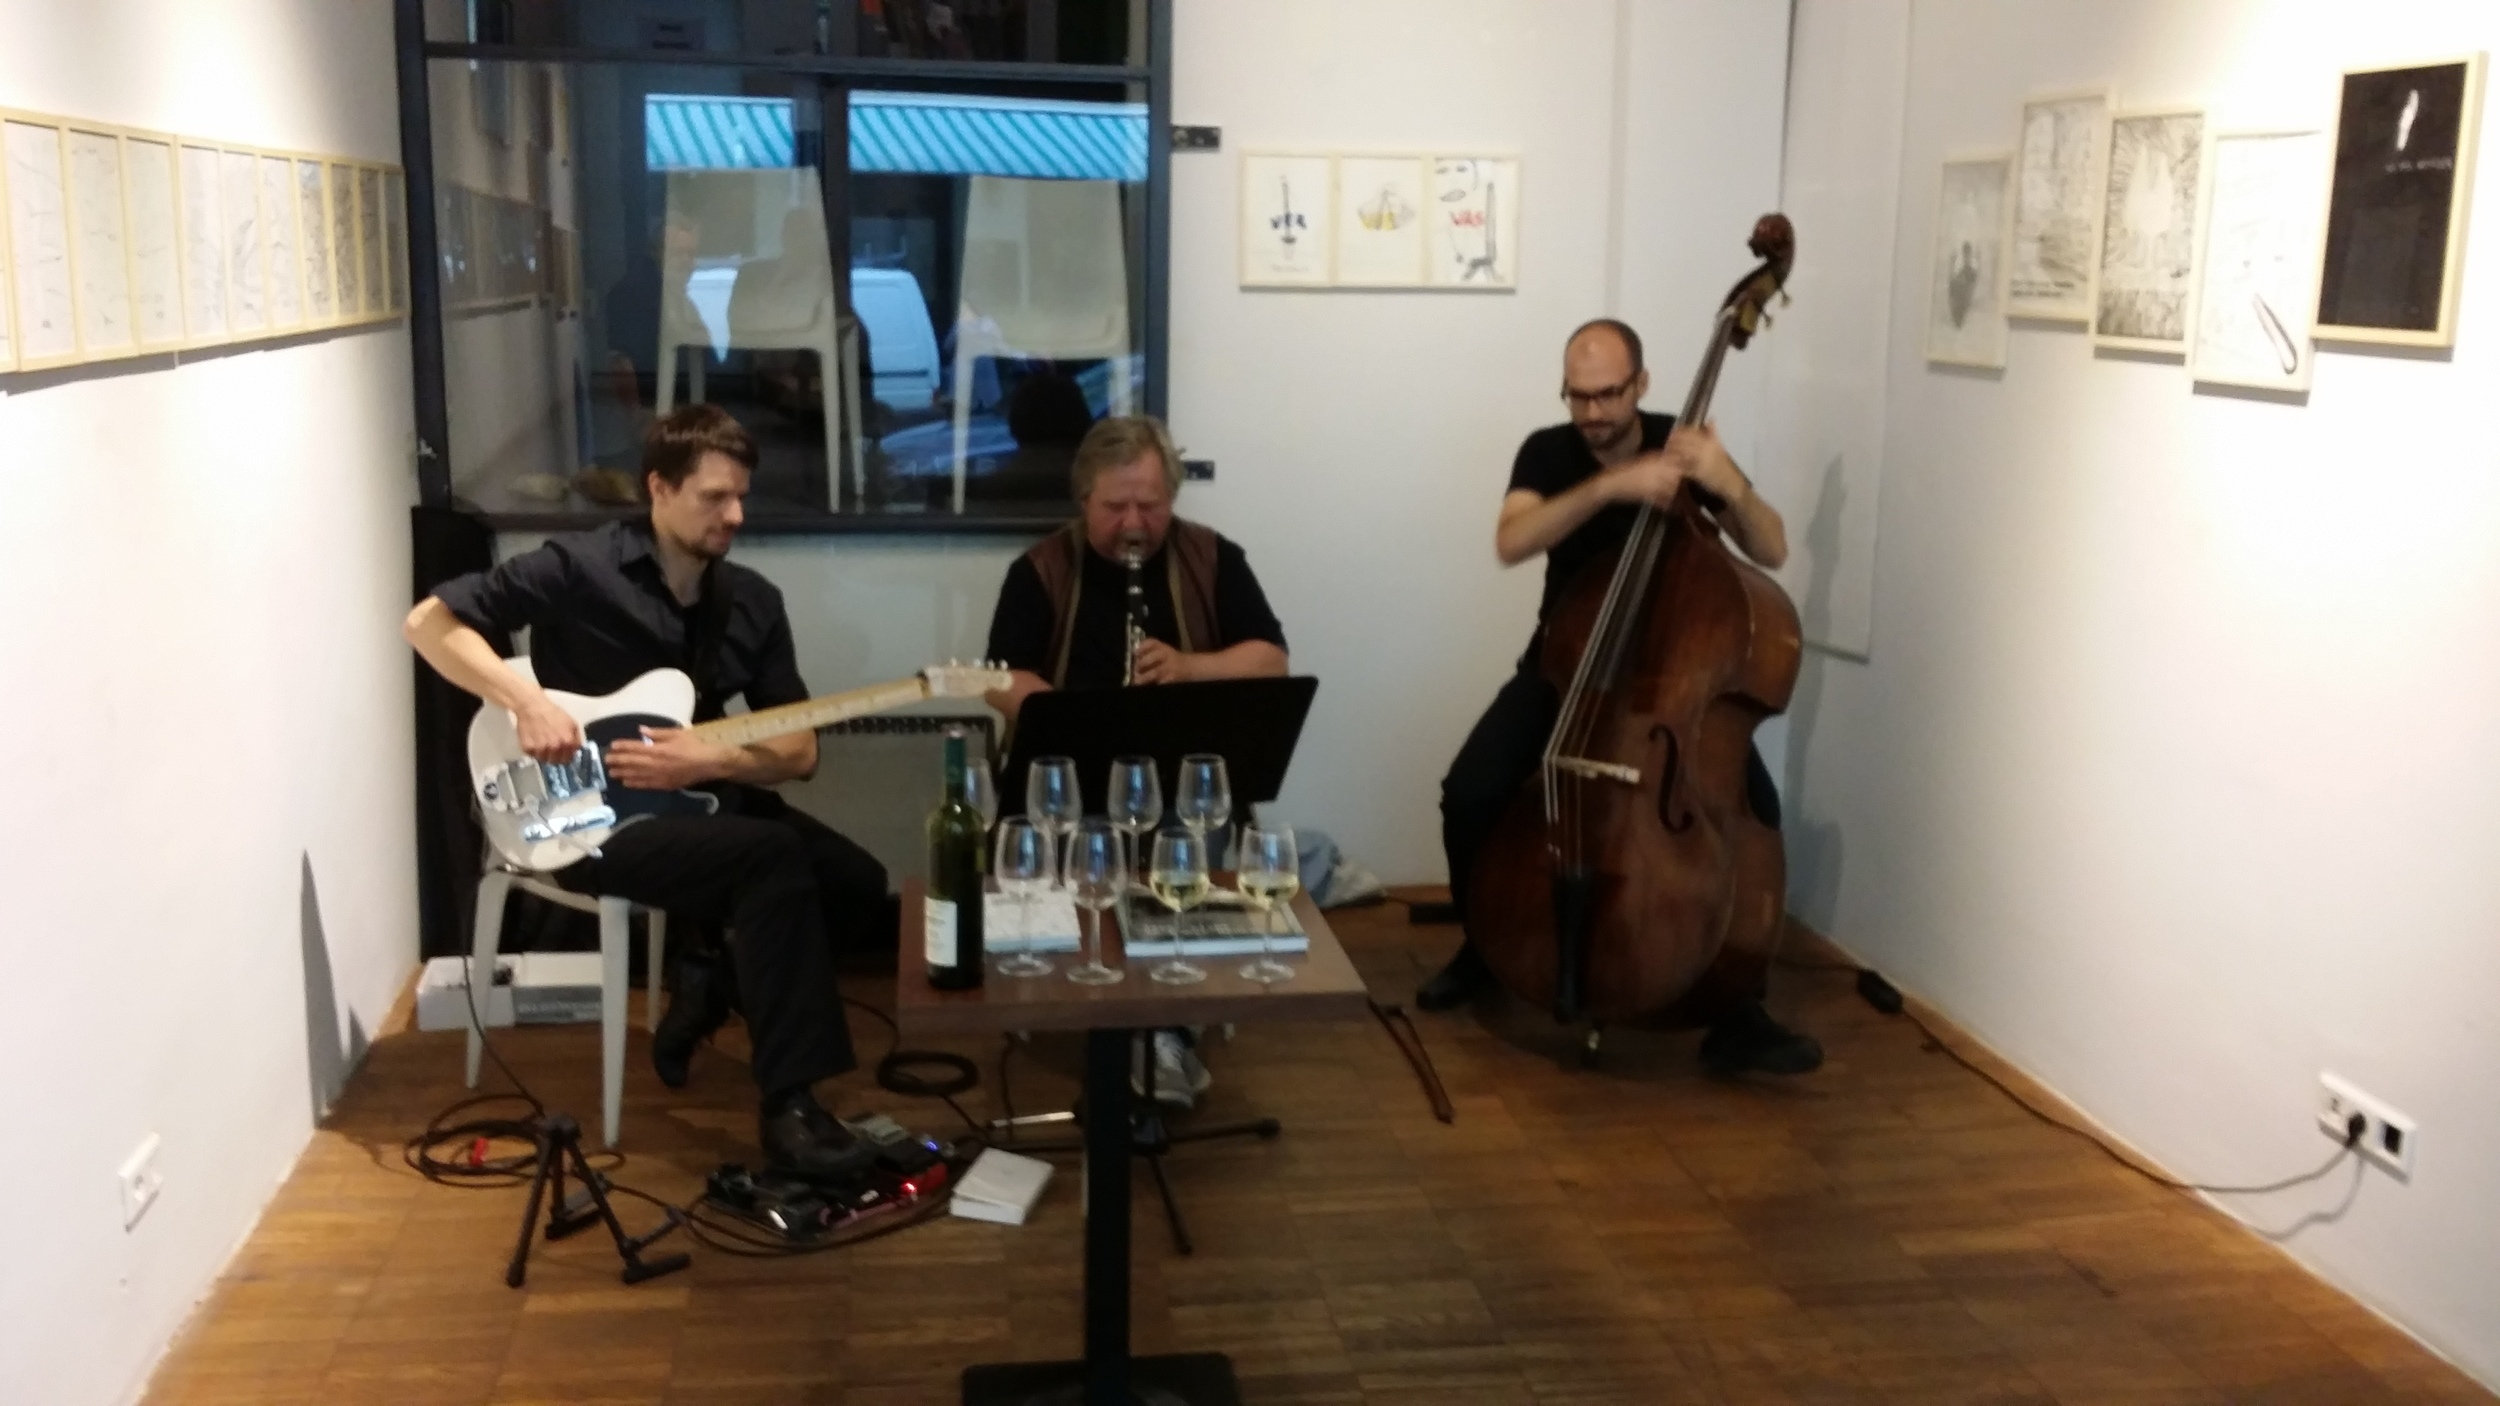 Wien, Porgy und Bess common space 2014